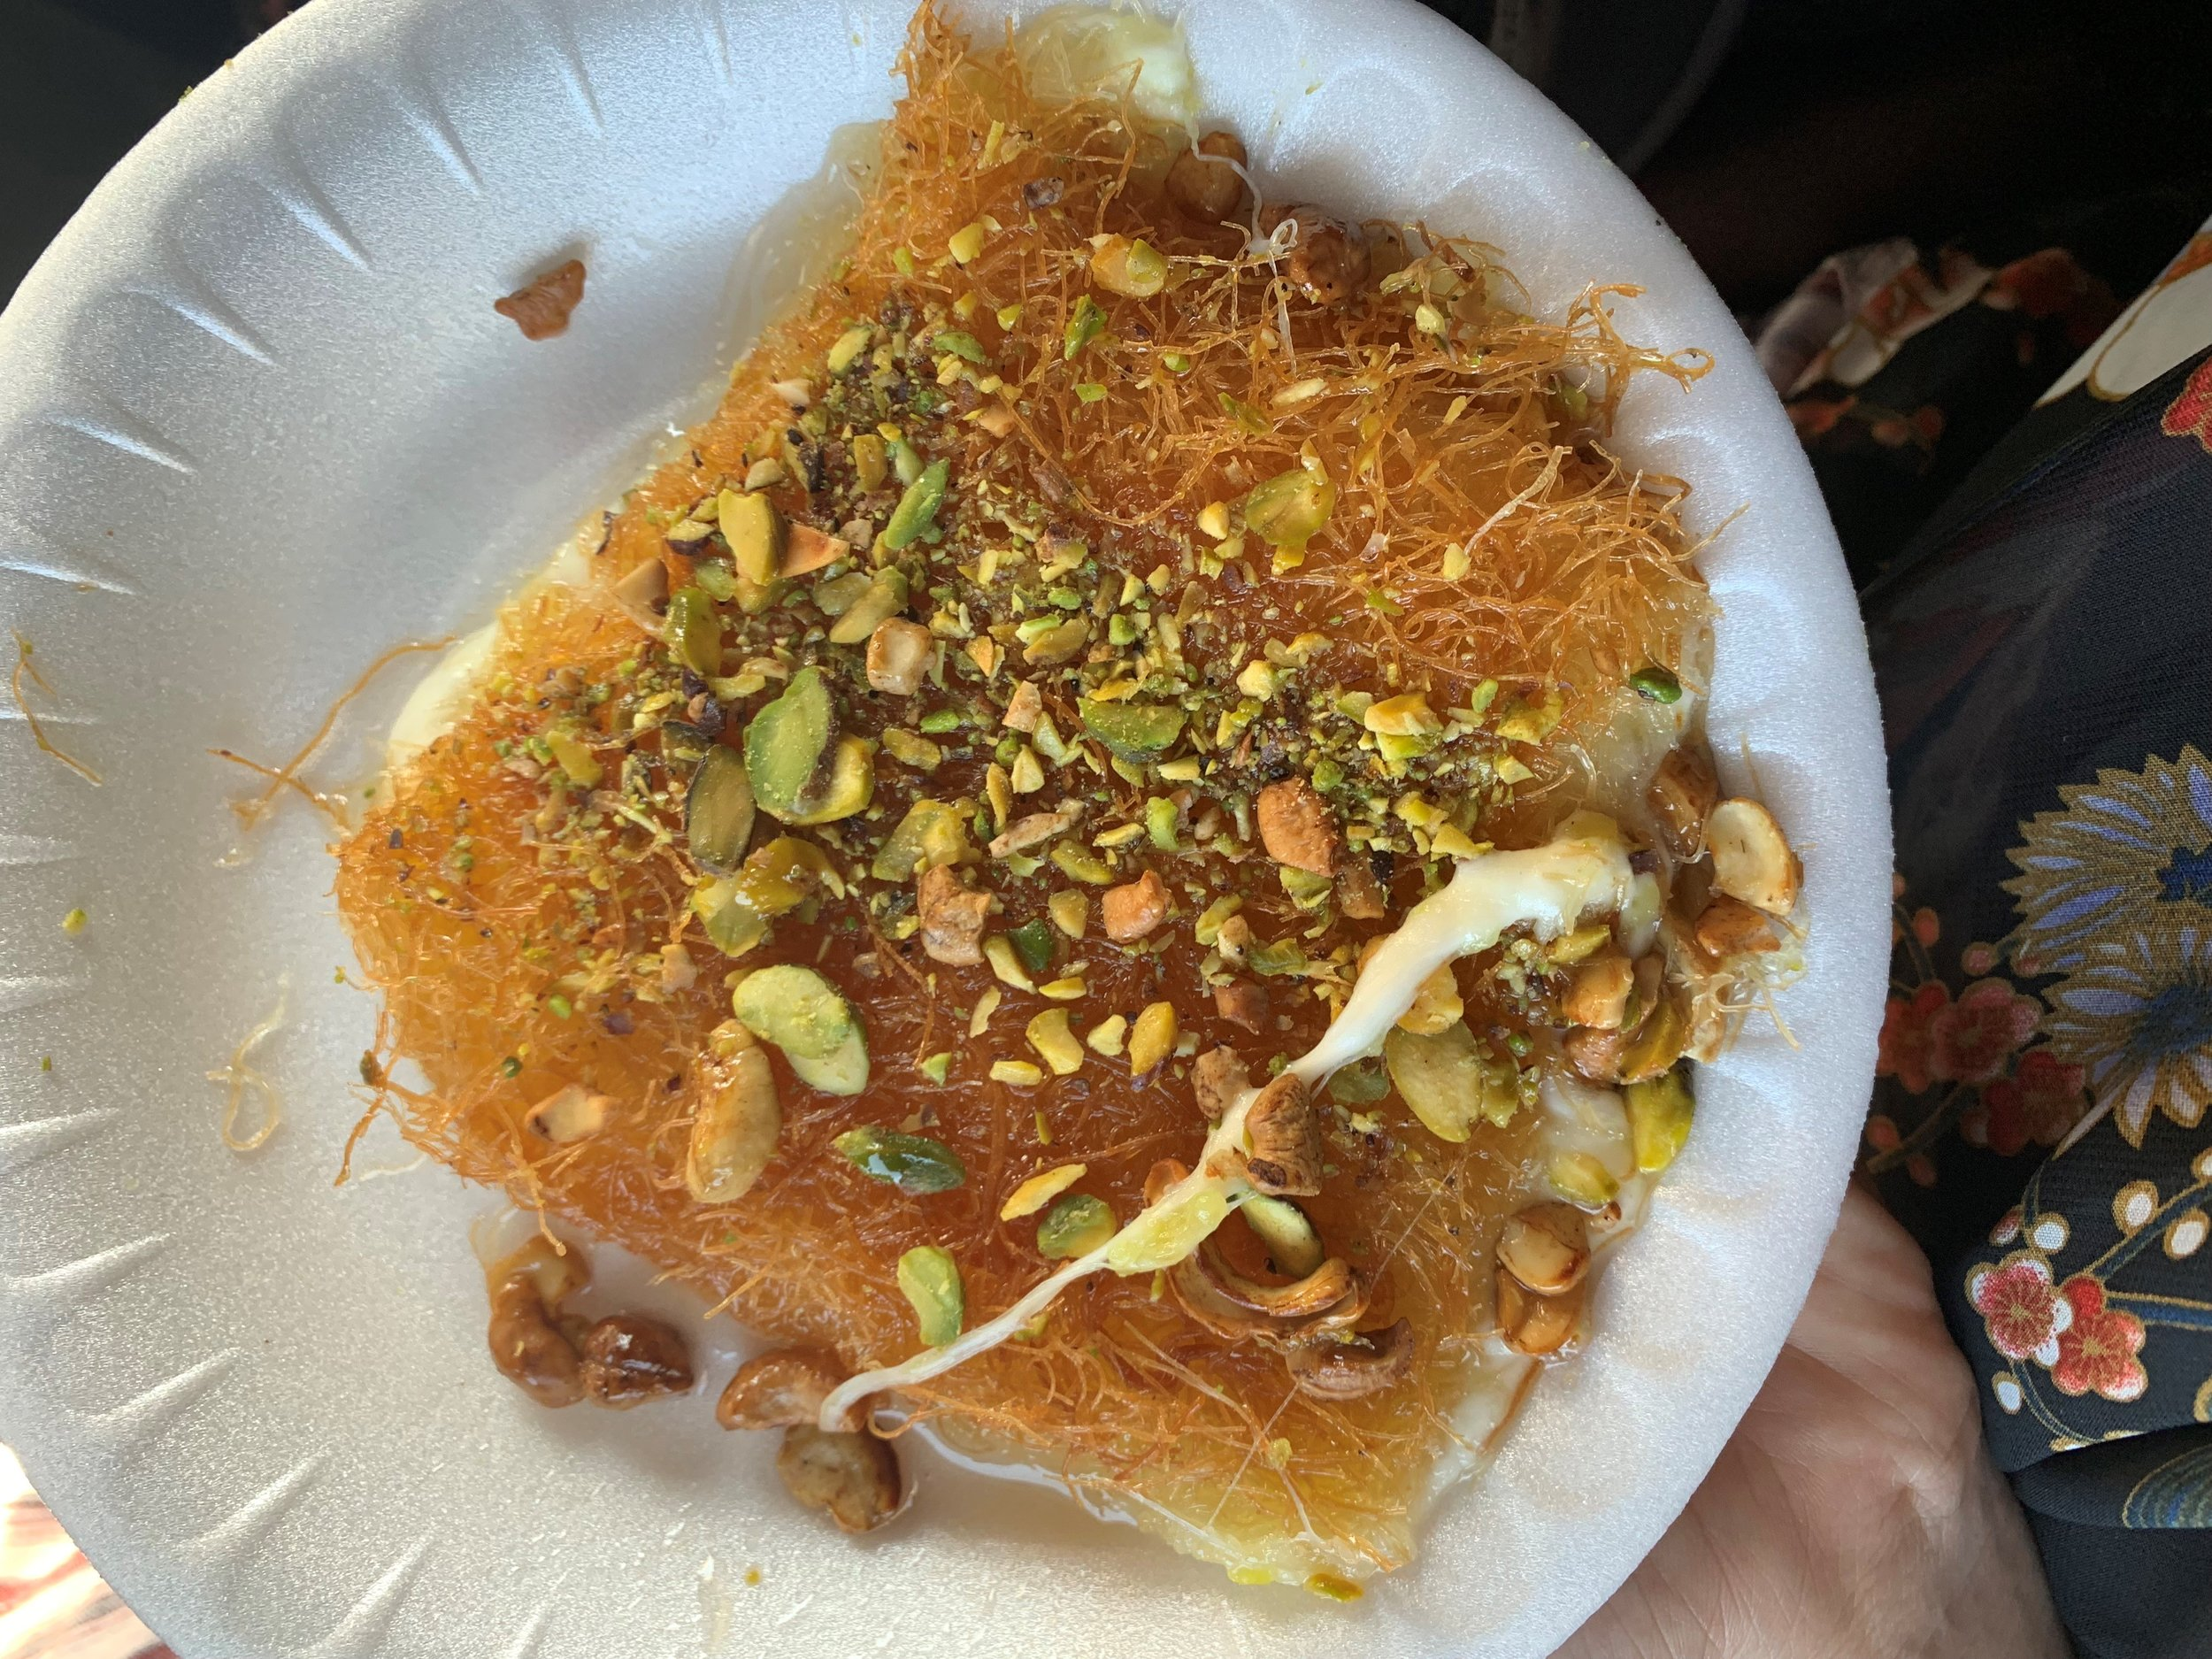 Not the most beautiful picture – but the most delicious dessert:  kanafeh . I would eat this for the rest of my life! This was the very first time I tried it and I was most definitely hooked. It's a must-eat. Photo credit: Russo, 2019